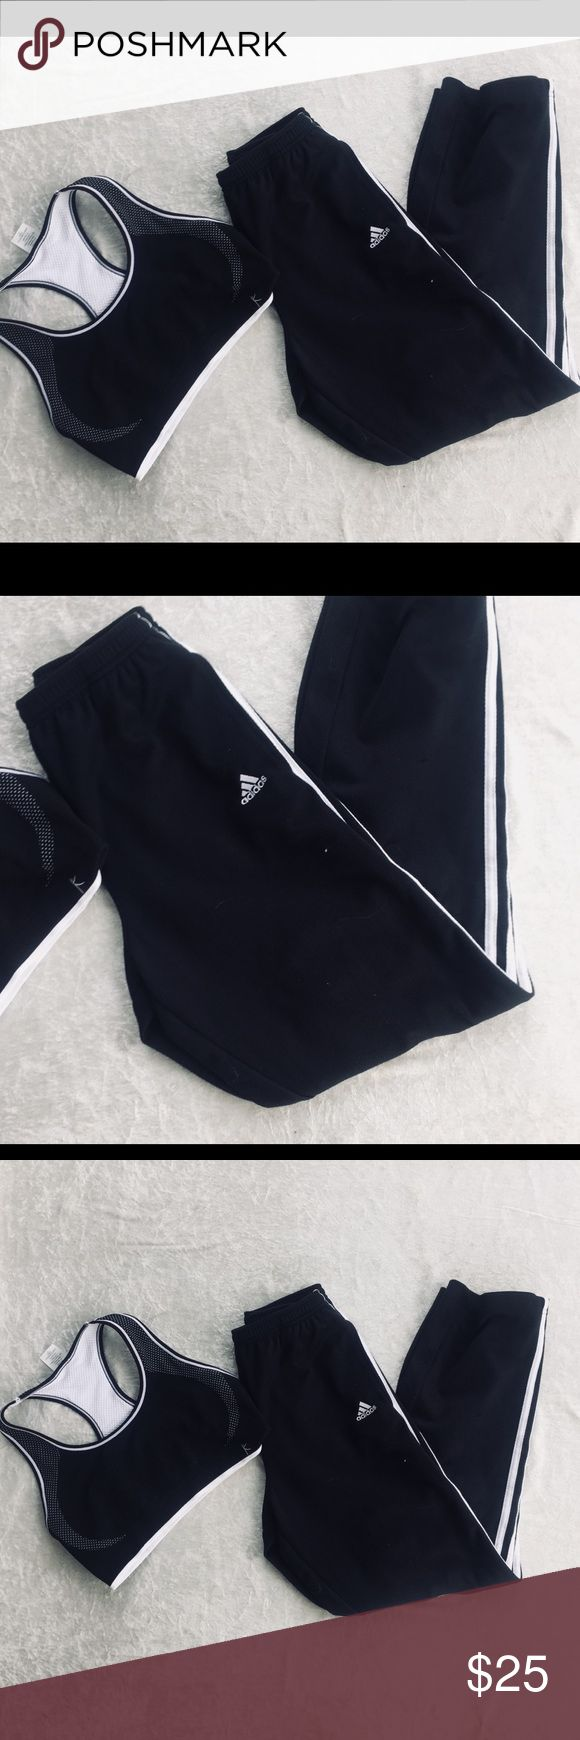 Adidas Jogging Pants sz Small These jogging pants are in great condition, perfect for a morning run! adidas Pants Track Pants & Joggers